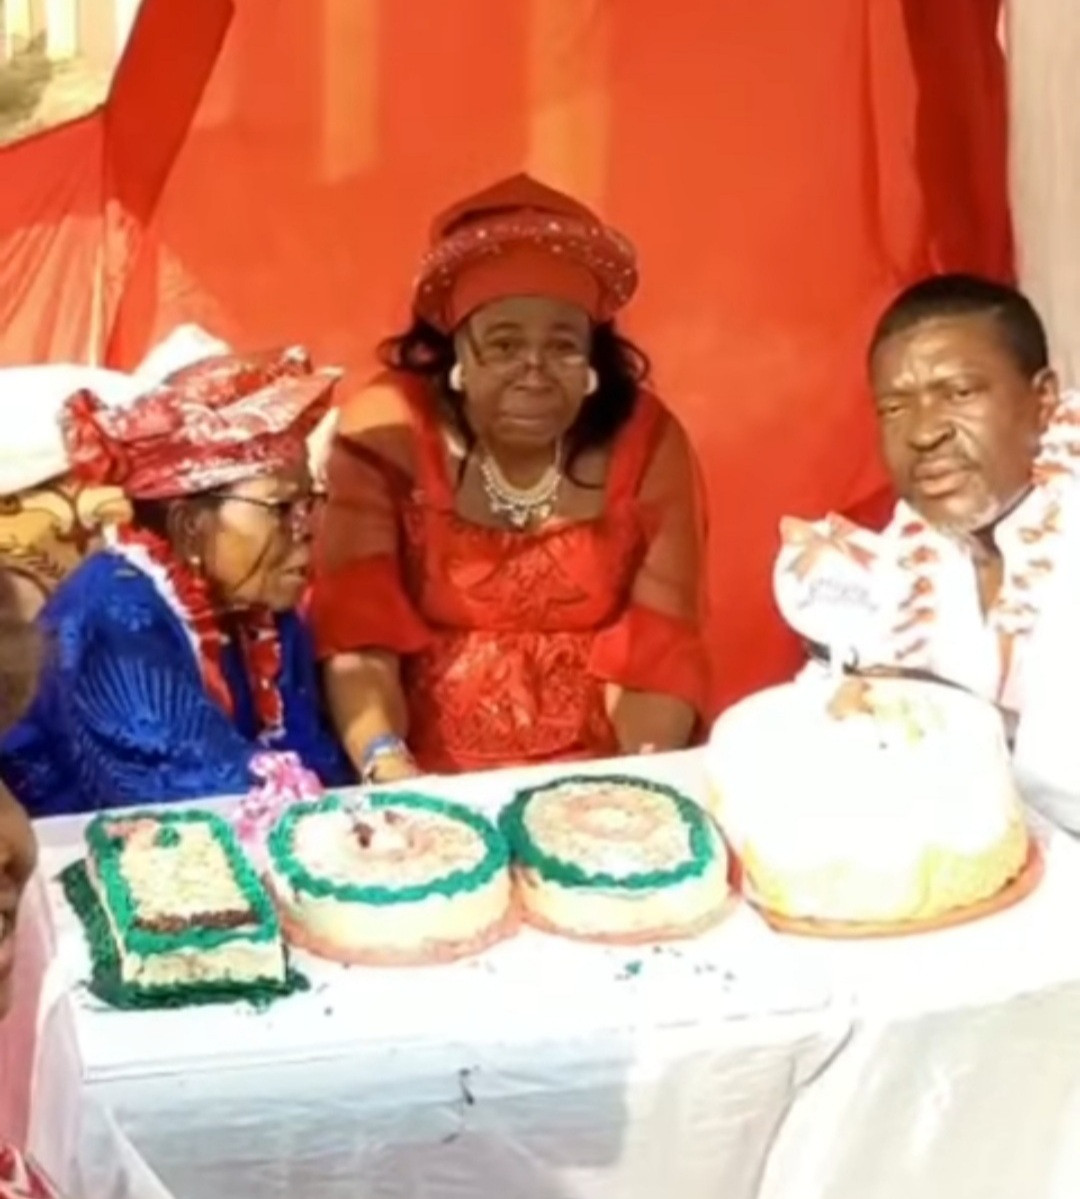 Kanayo O. Kanayo blasts followers who left insensitive comments as he paid homage to a woman on her 100th birthday celebration